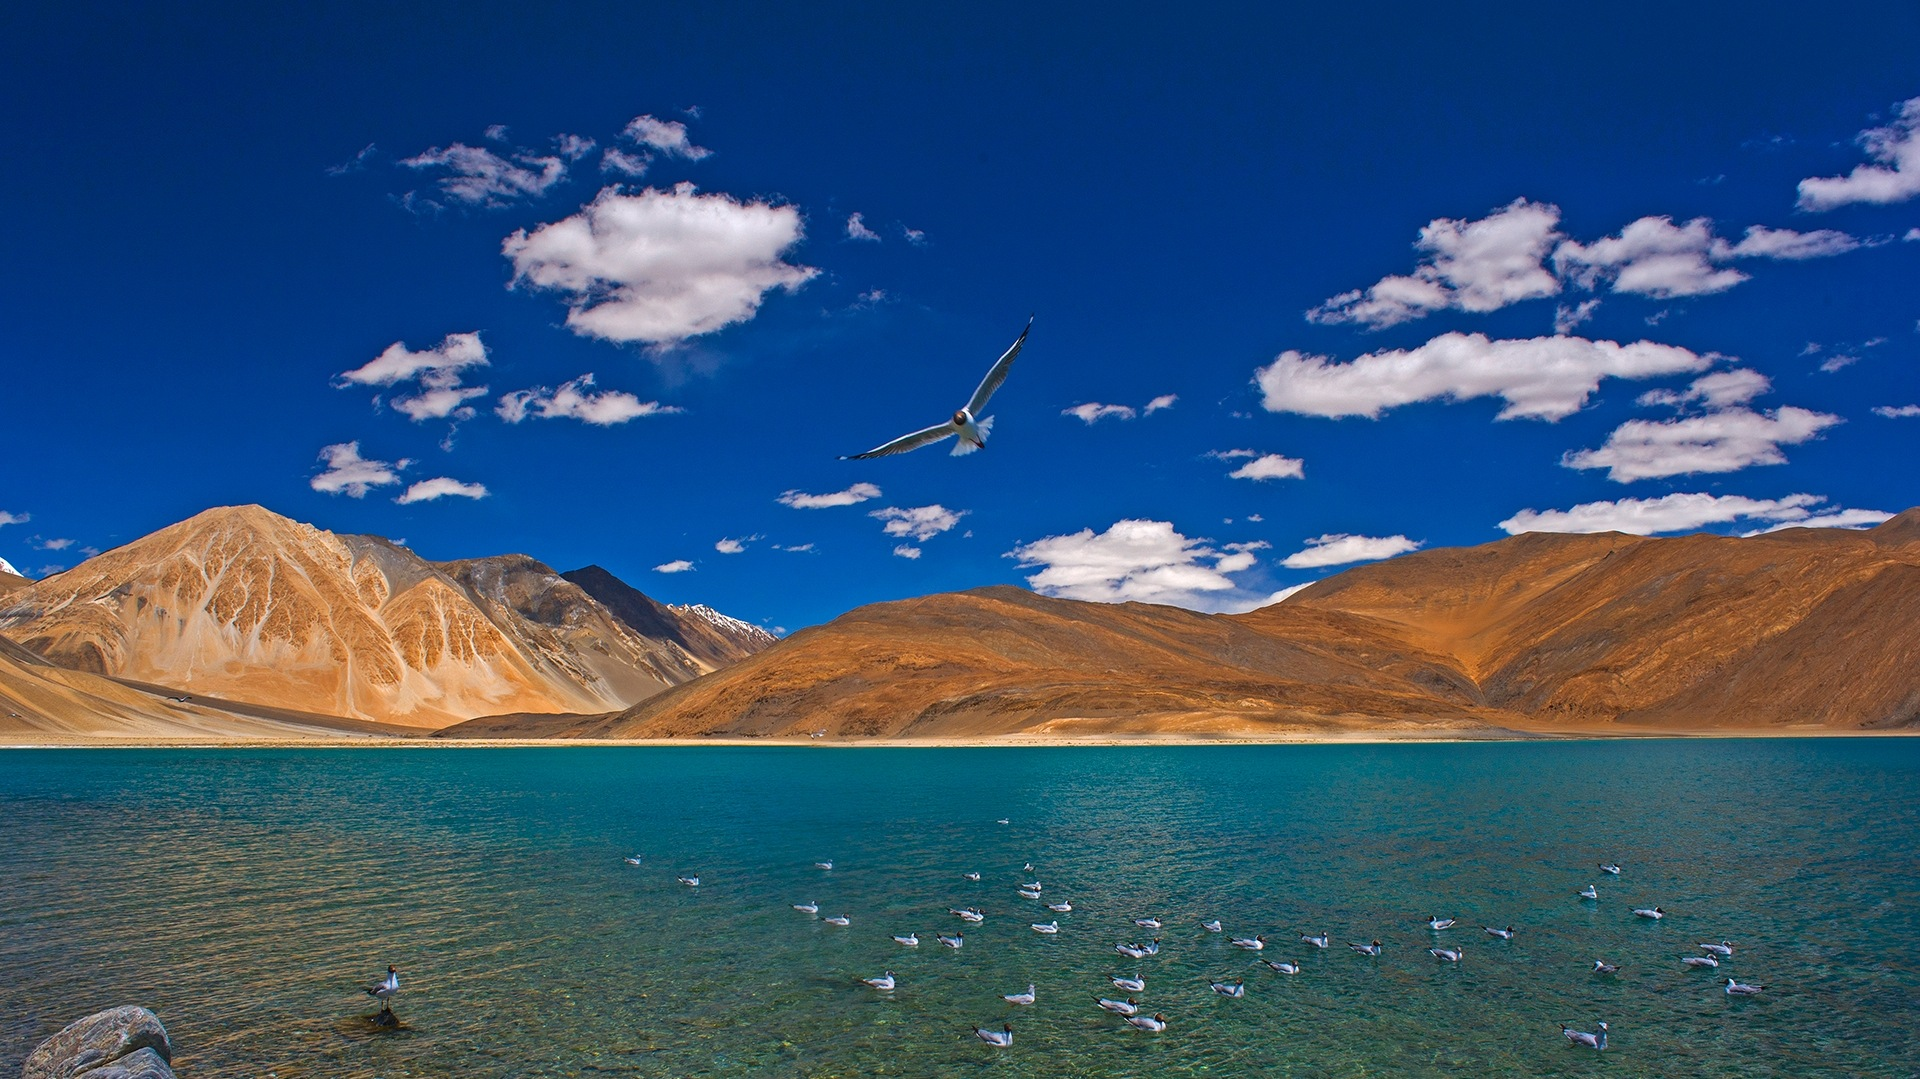 The Guide: Changthang Wildlife Sanctuary